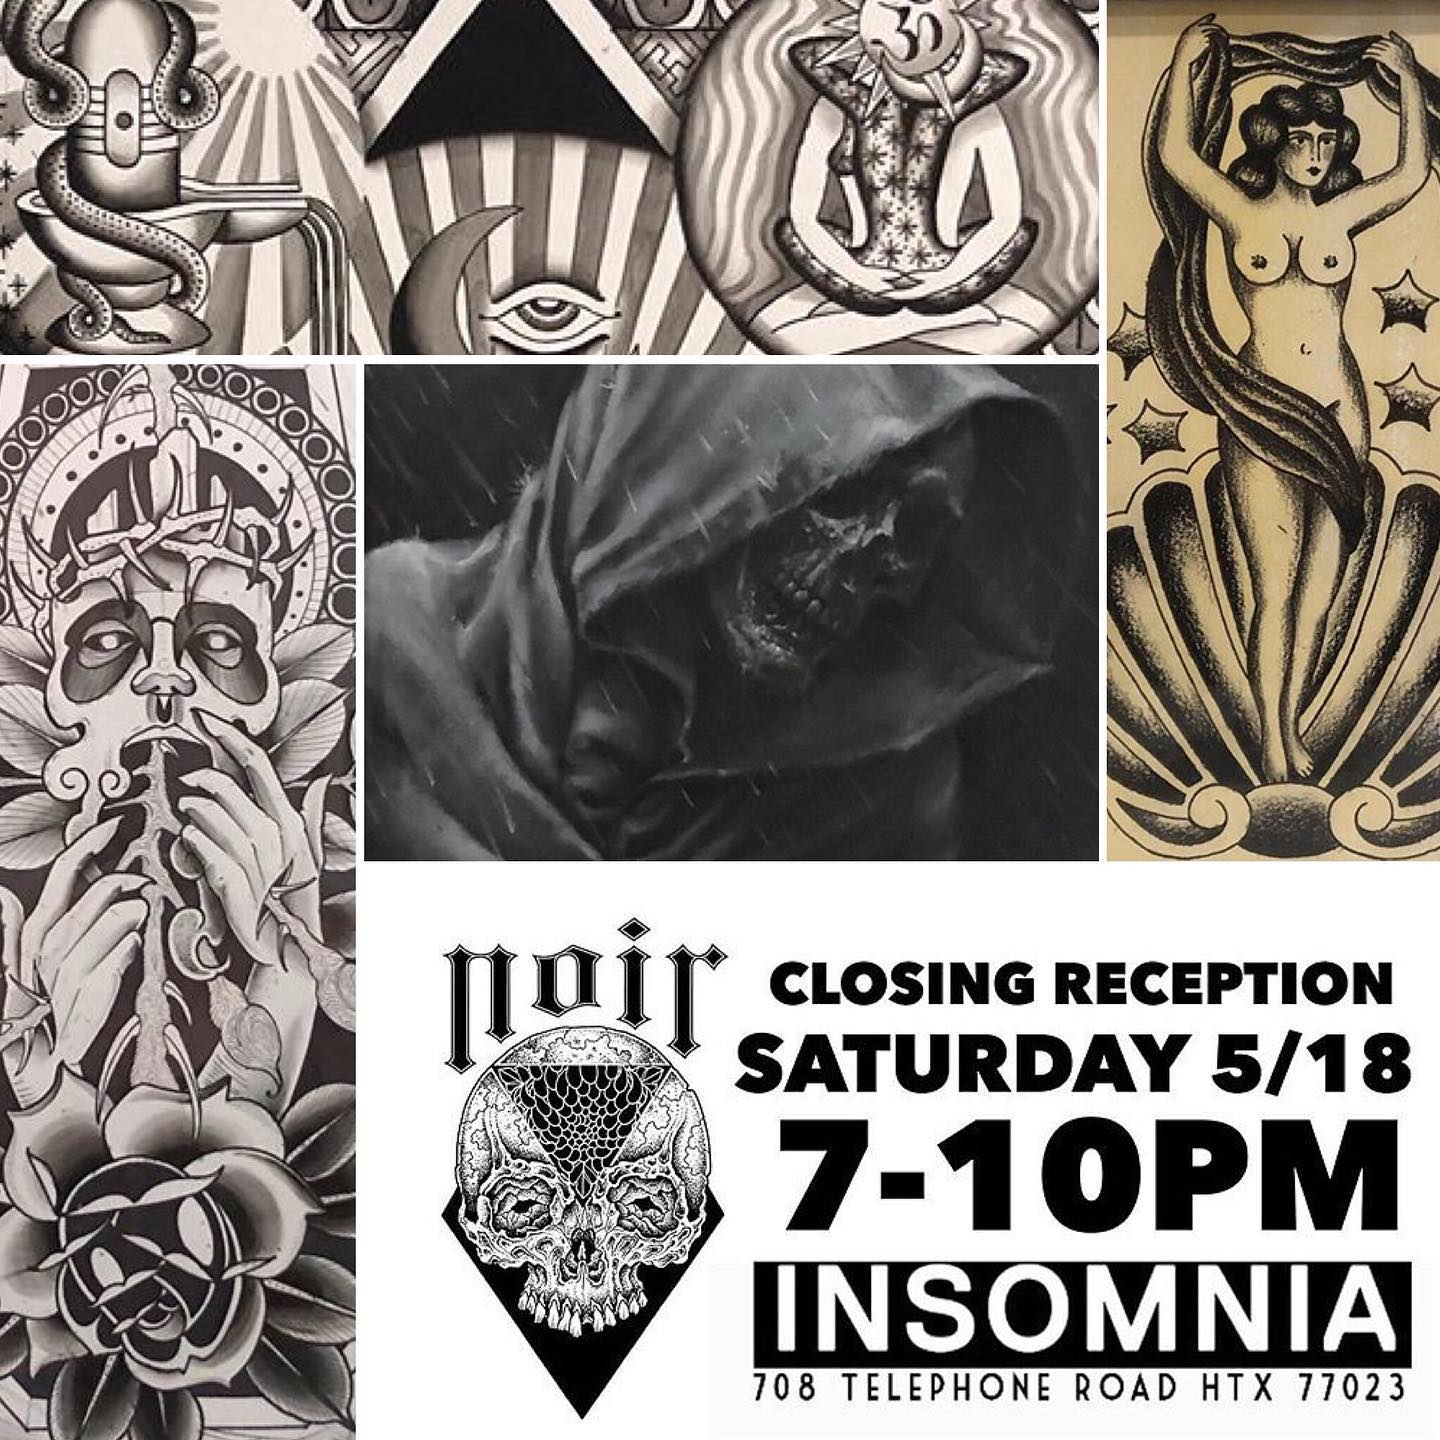 NOIR ART SHOW CLOSING RECEPTION - May 18th, 7:00 pm - 10:00 pm